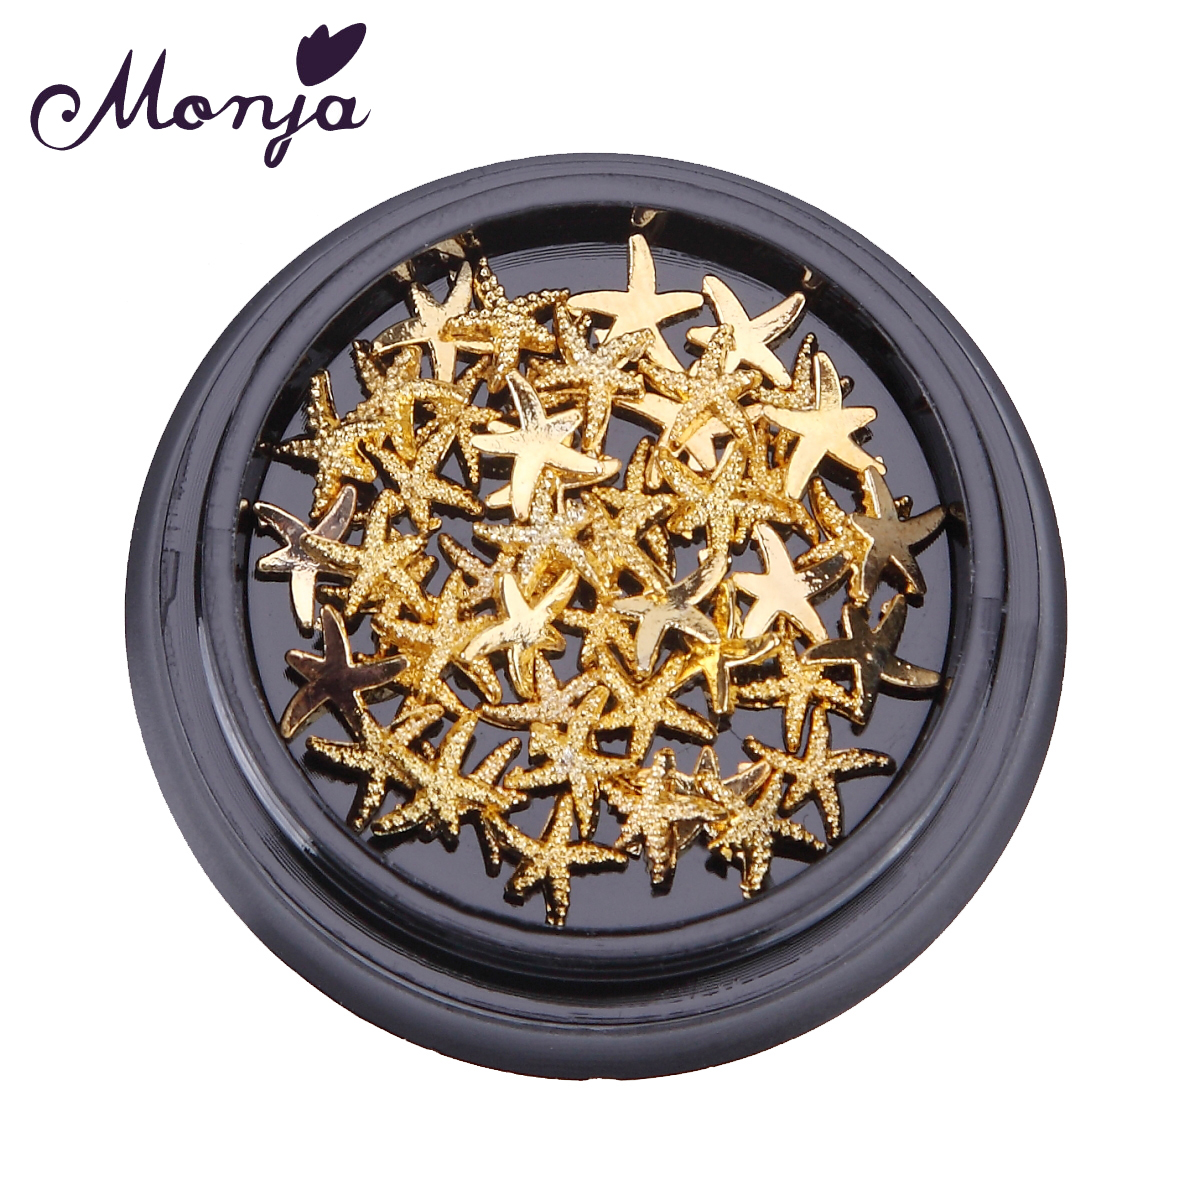 1 Box Reusable Metal Nail Art Golden Starfish Decoration Set Gel Polish Tips Pro Manicure 3D Design DIY Sticker Decal Phone Kits 10 color 20m rolls nail art uv gel tips striping tape line sticker diy decoration 03ik